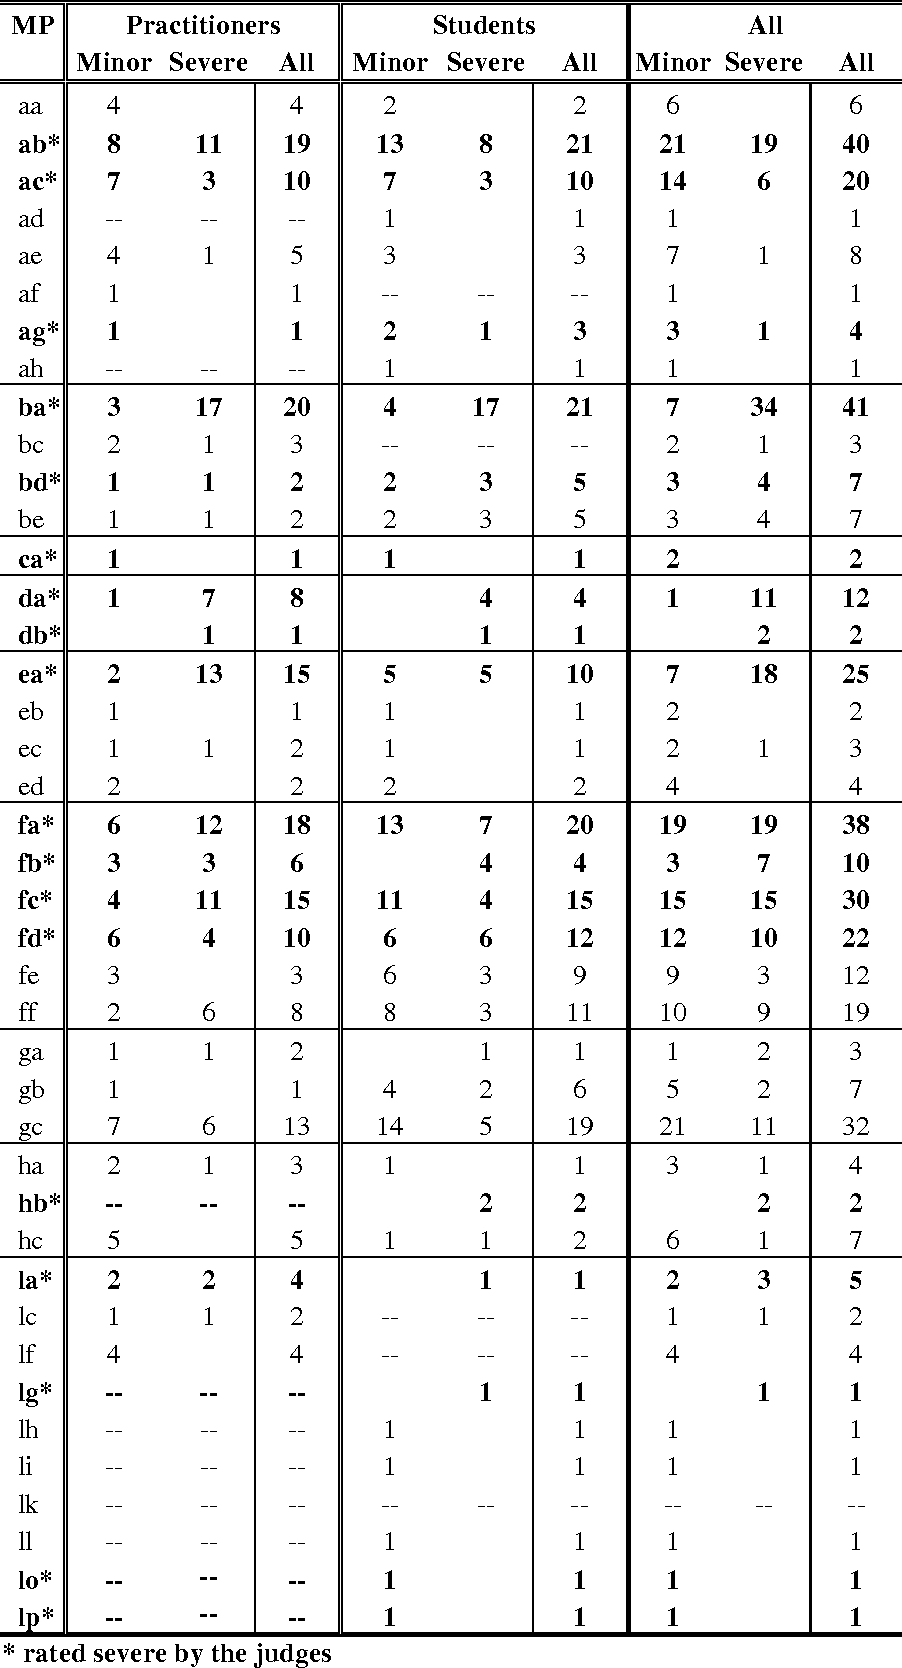 table 3.15